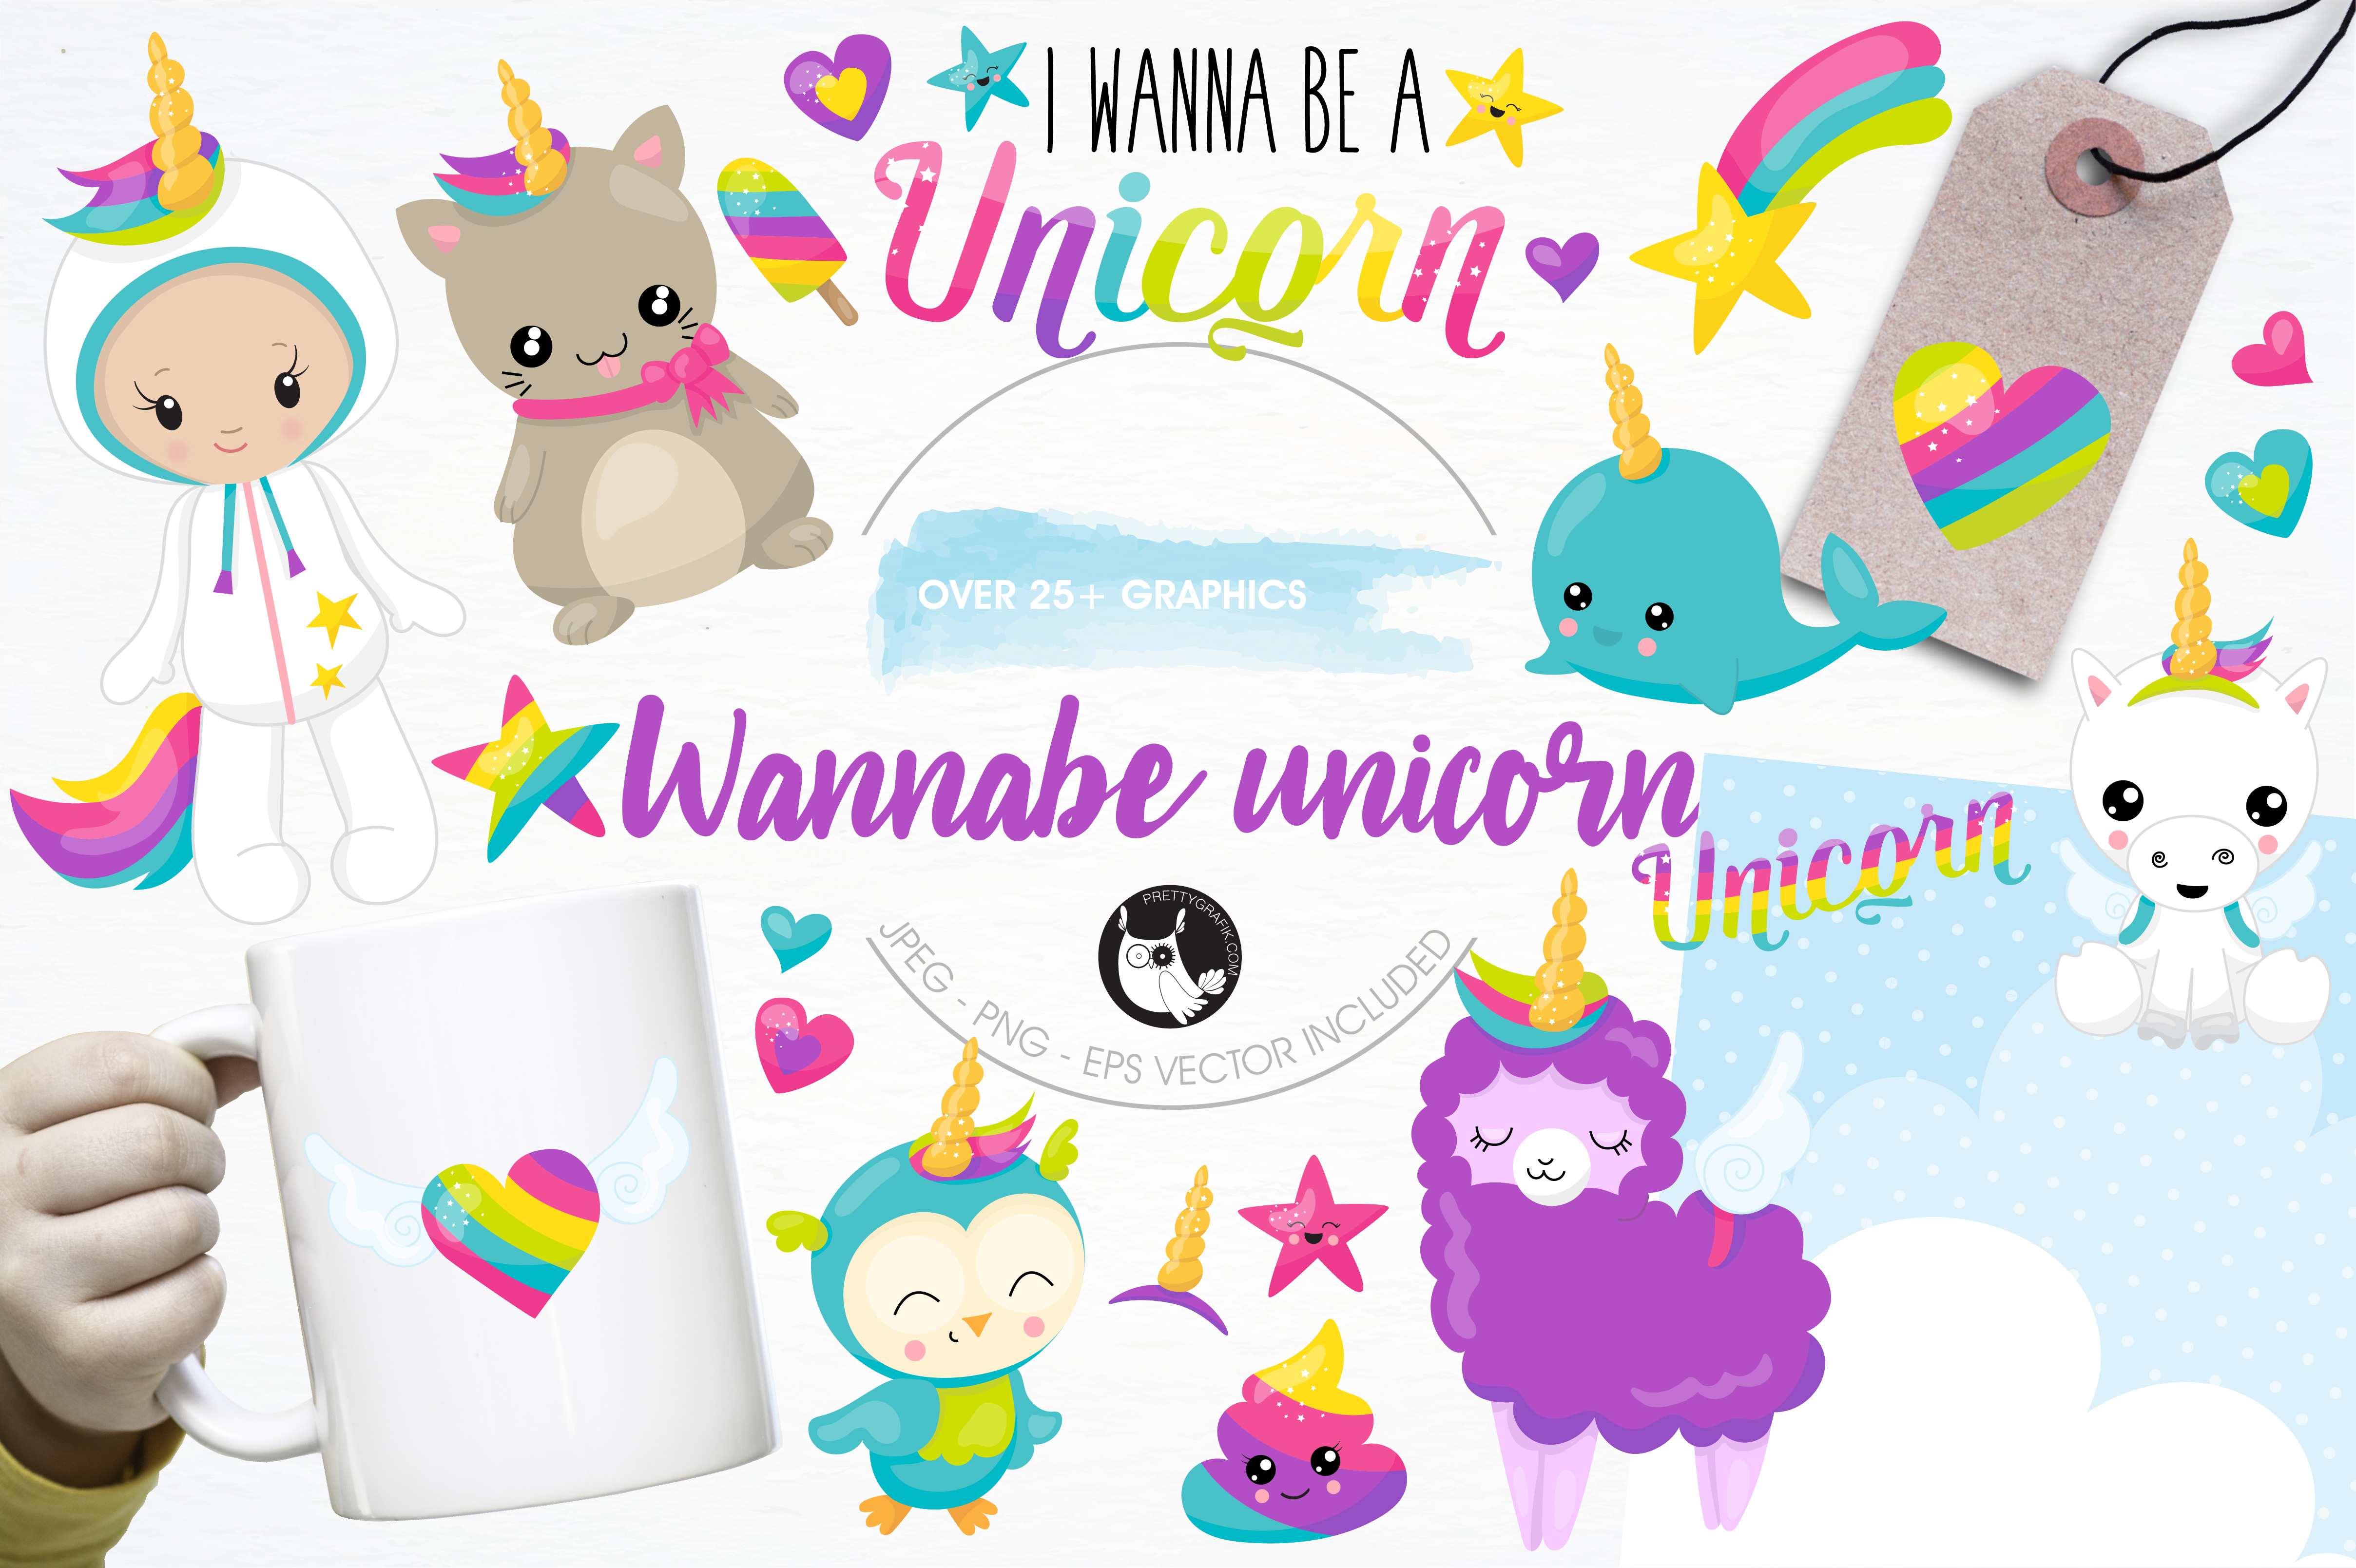 Wannabe unicorn graphics and illustrations example image 1